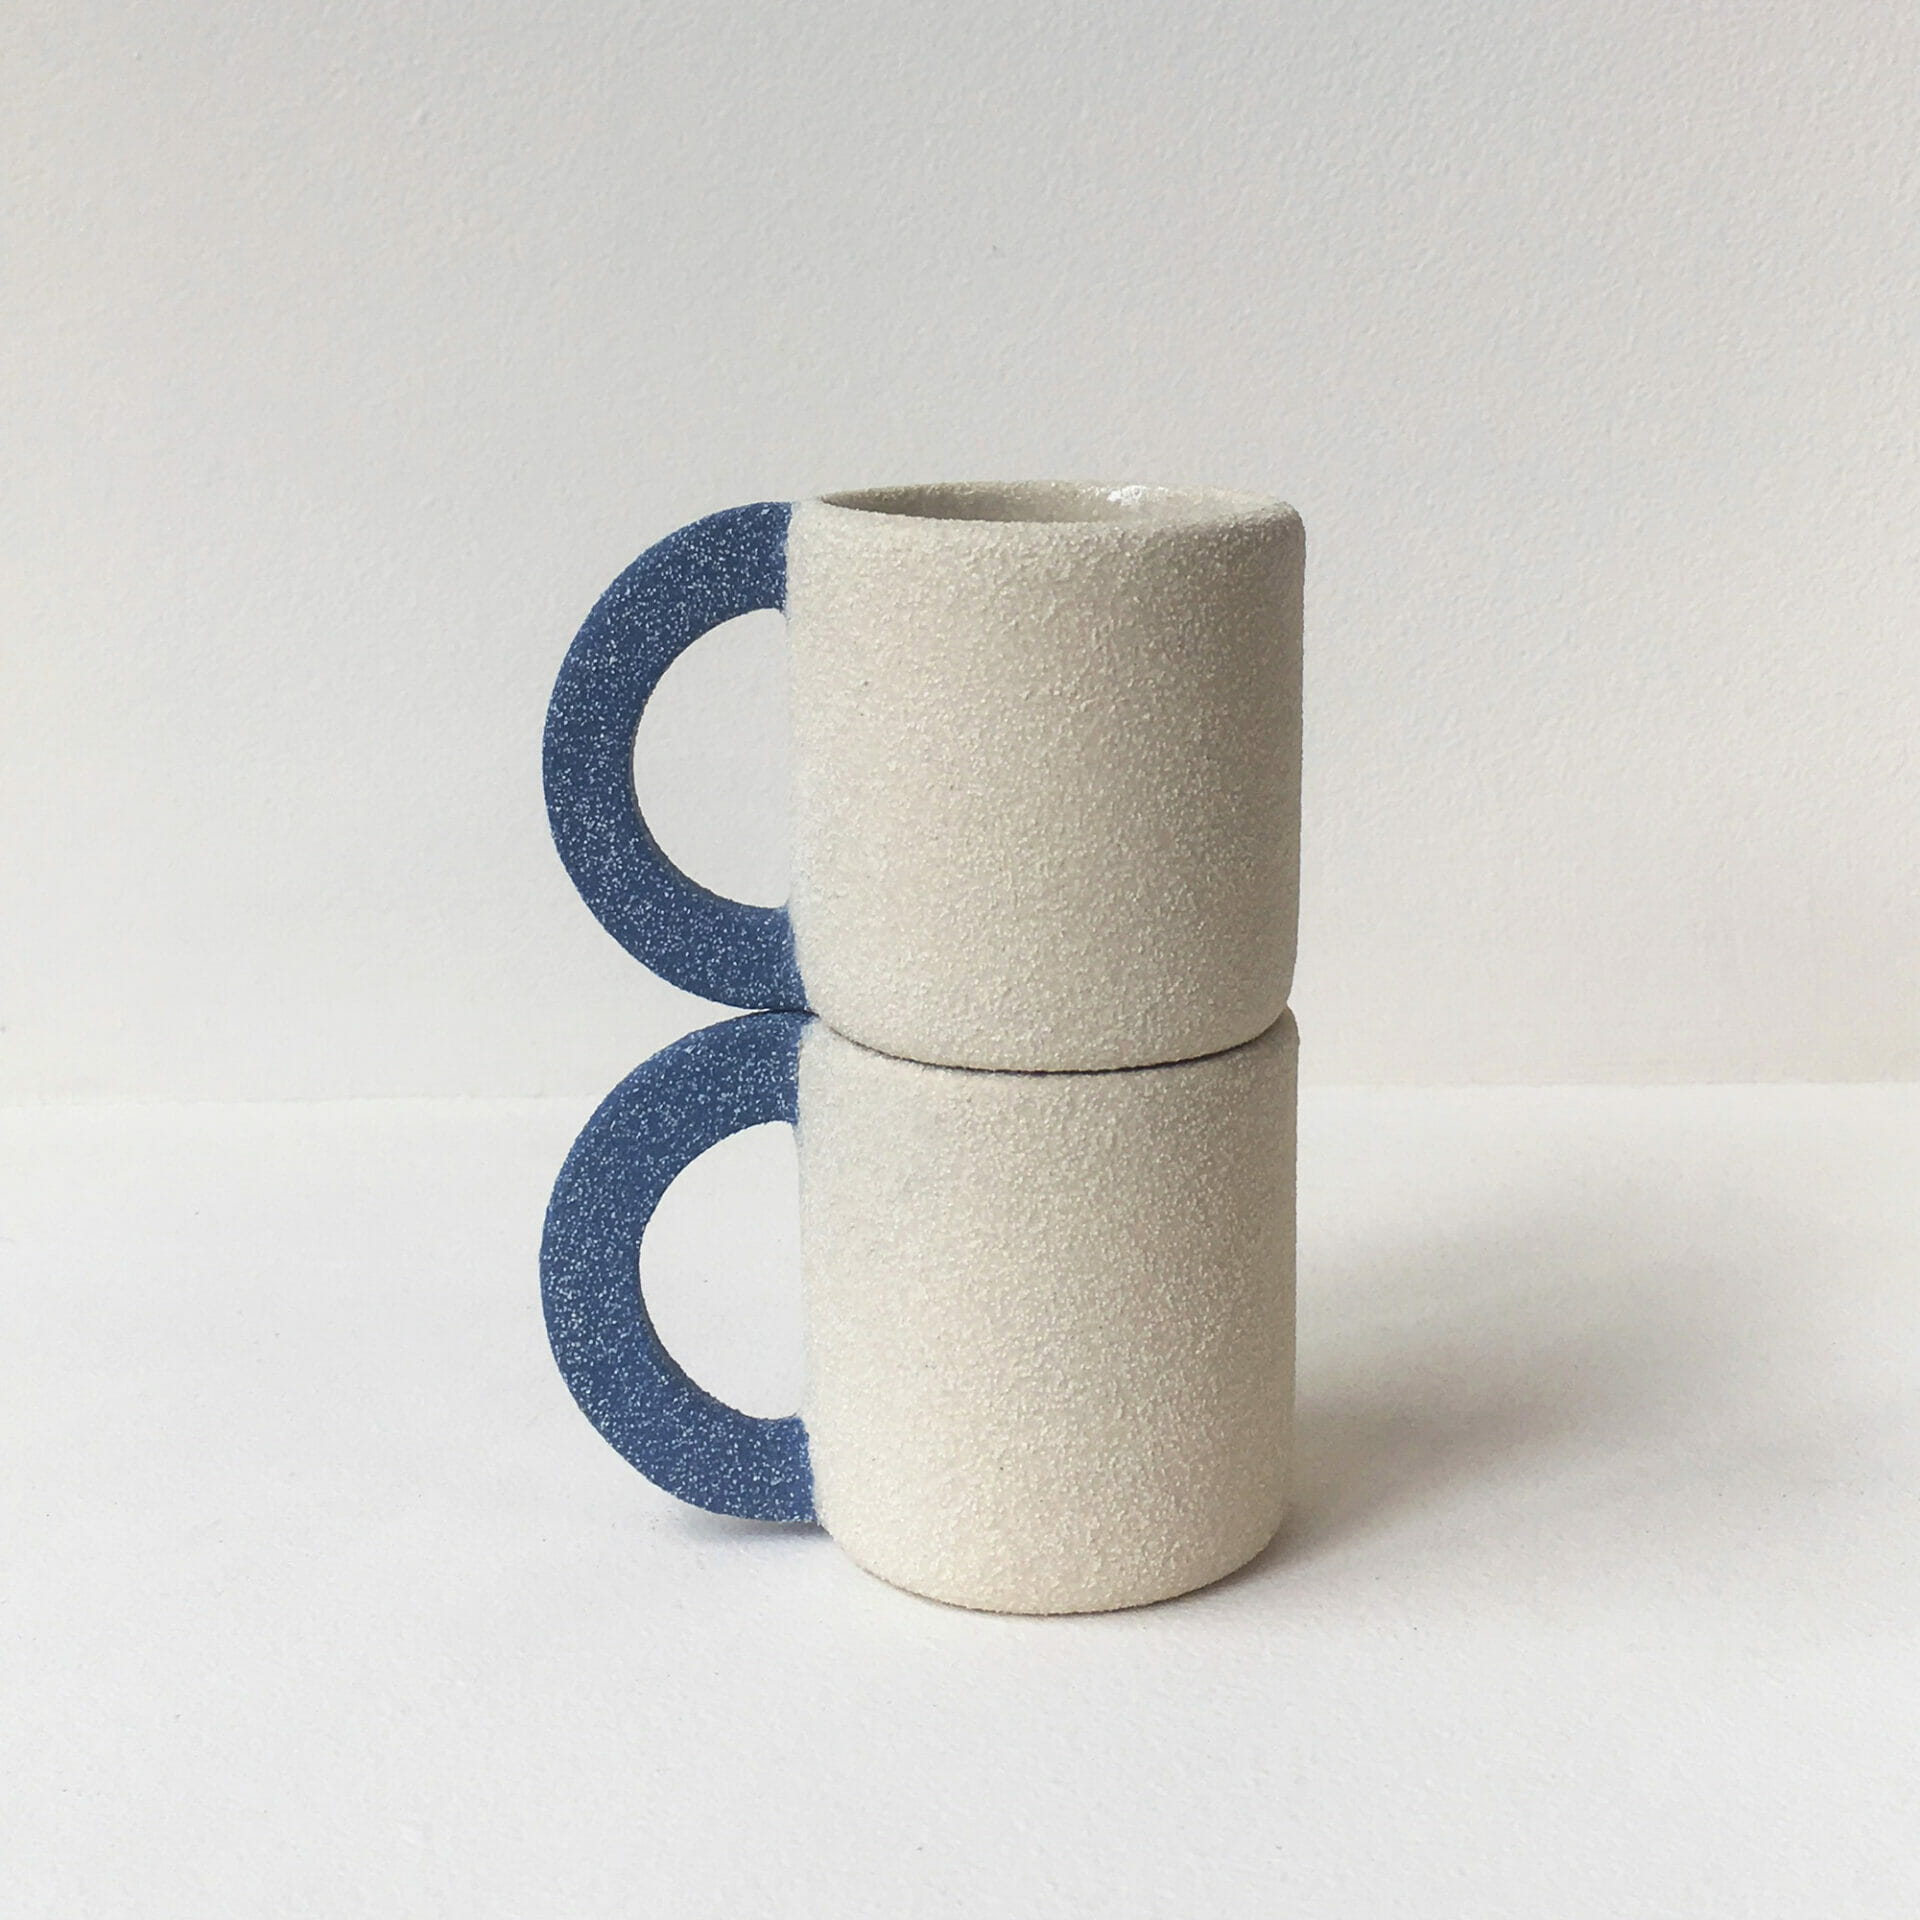 denim-cup-ceramics